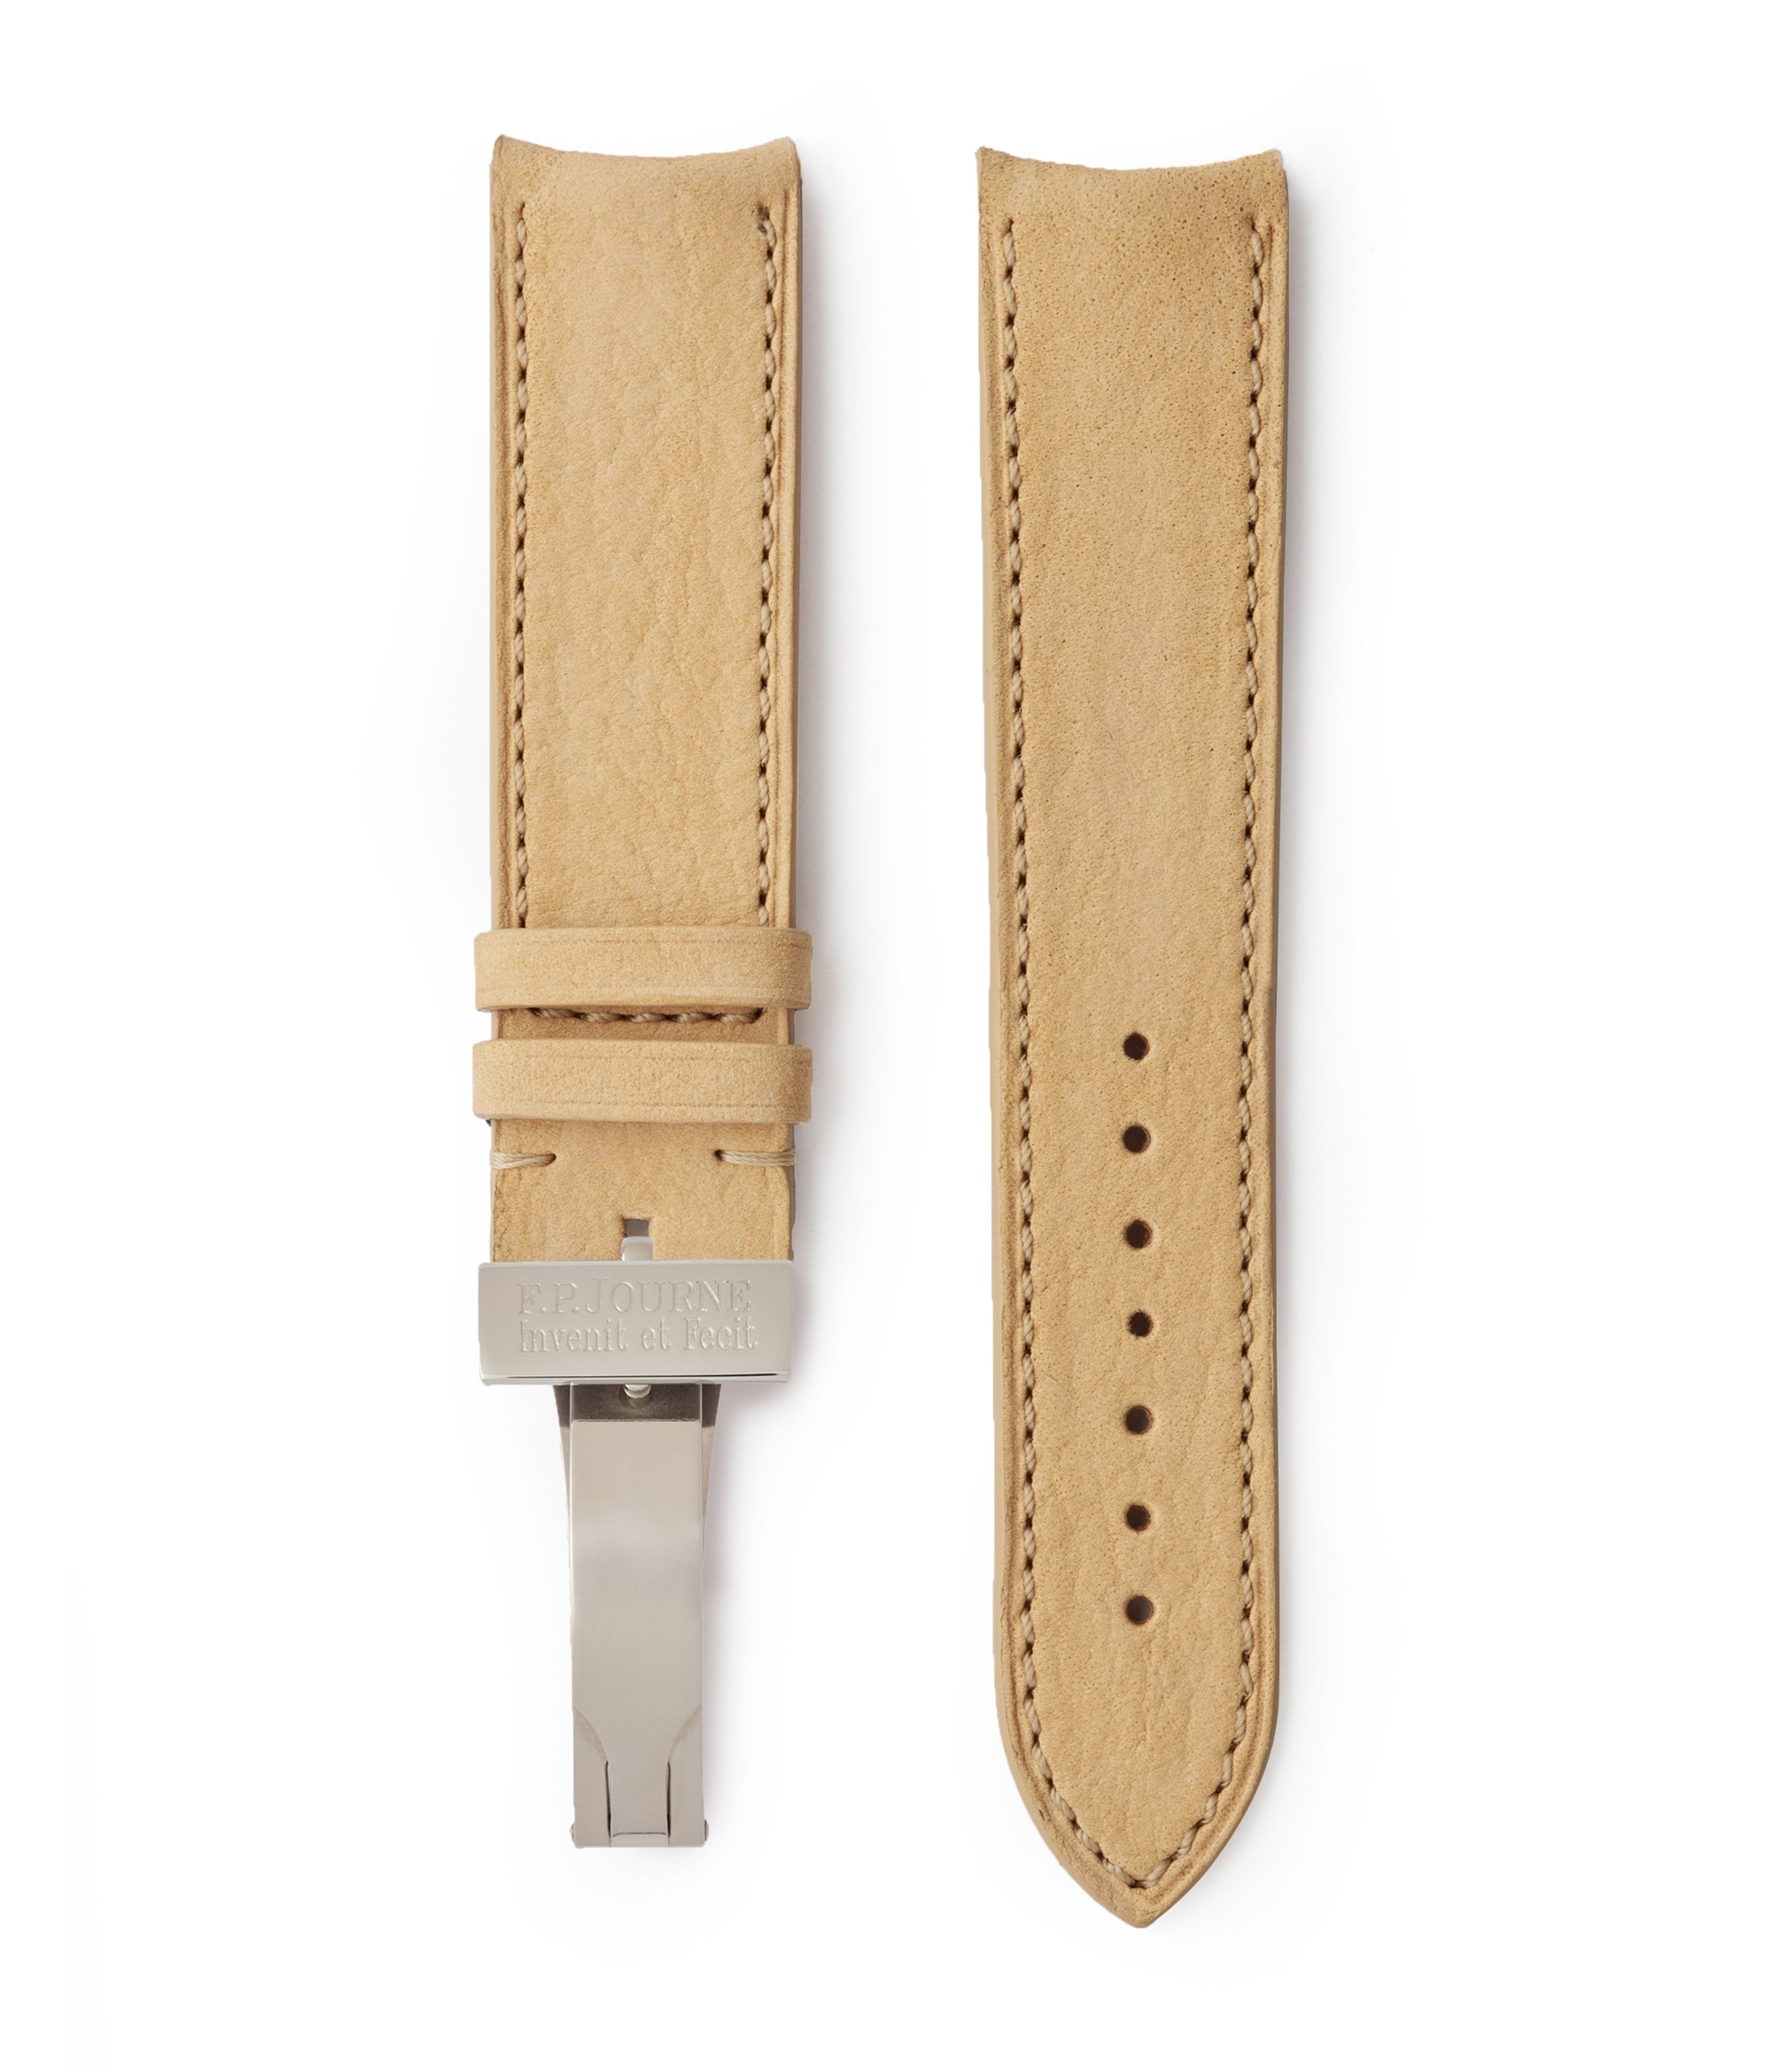 buy Capri 20x19mm curved F. P. Journe-sized sand nubuck leather watch strap for sale online at A Collected Man London